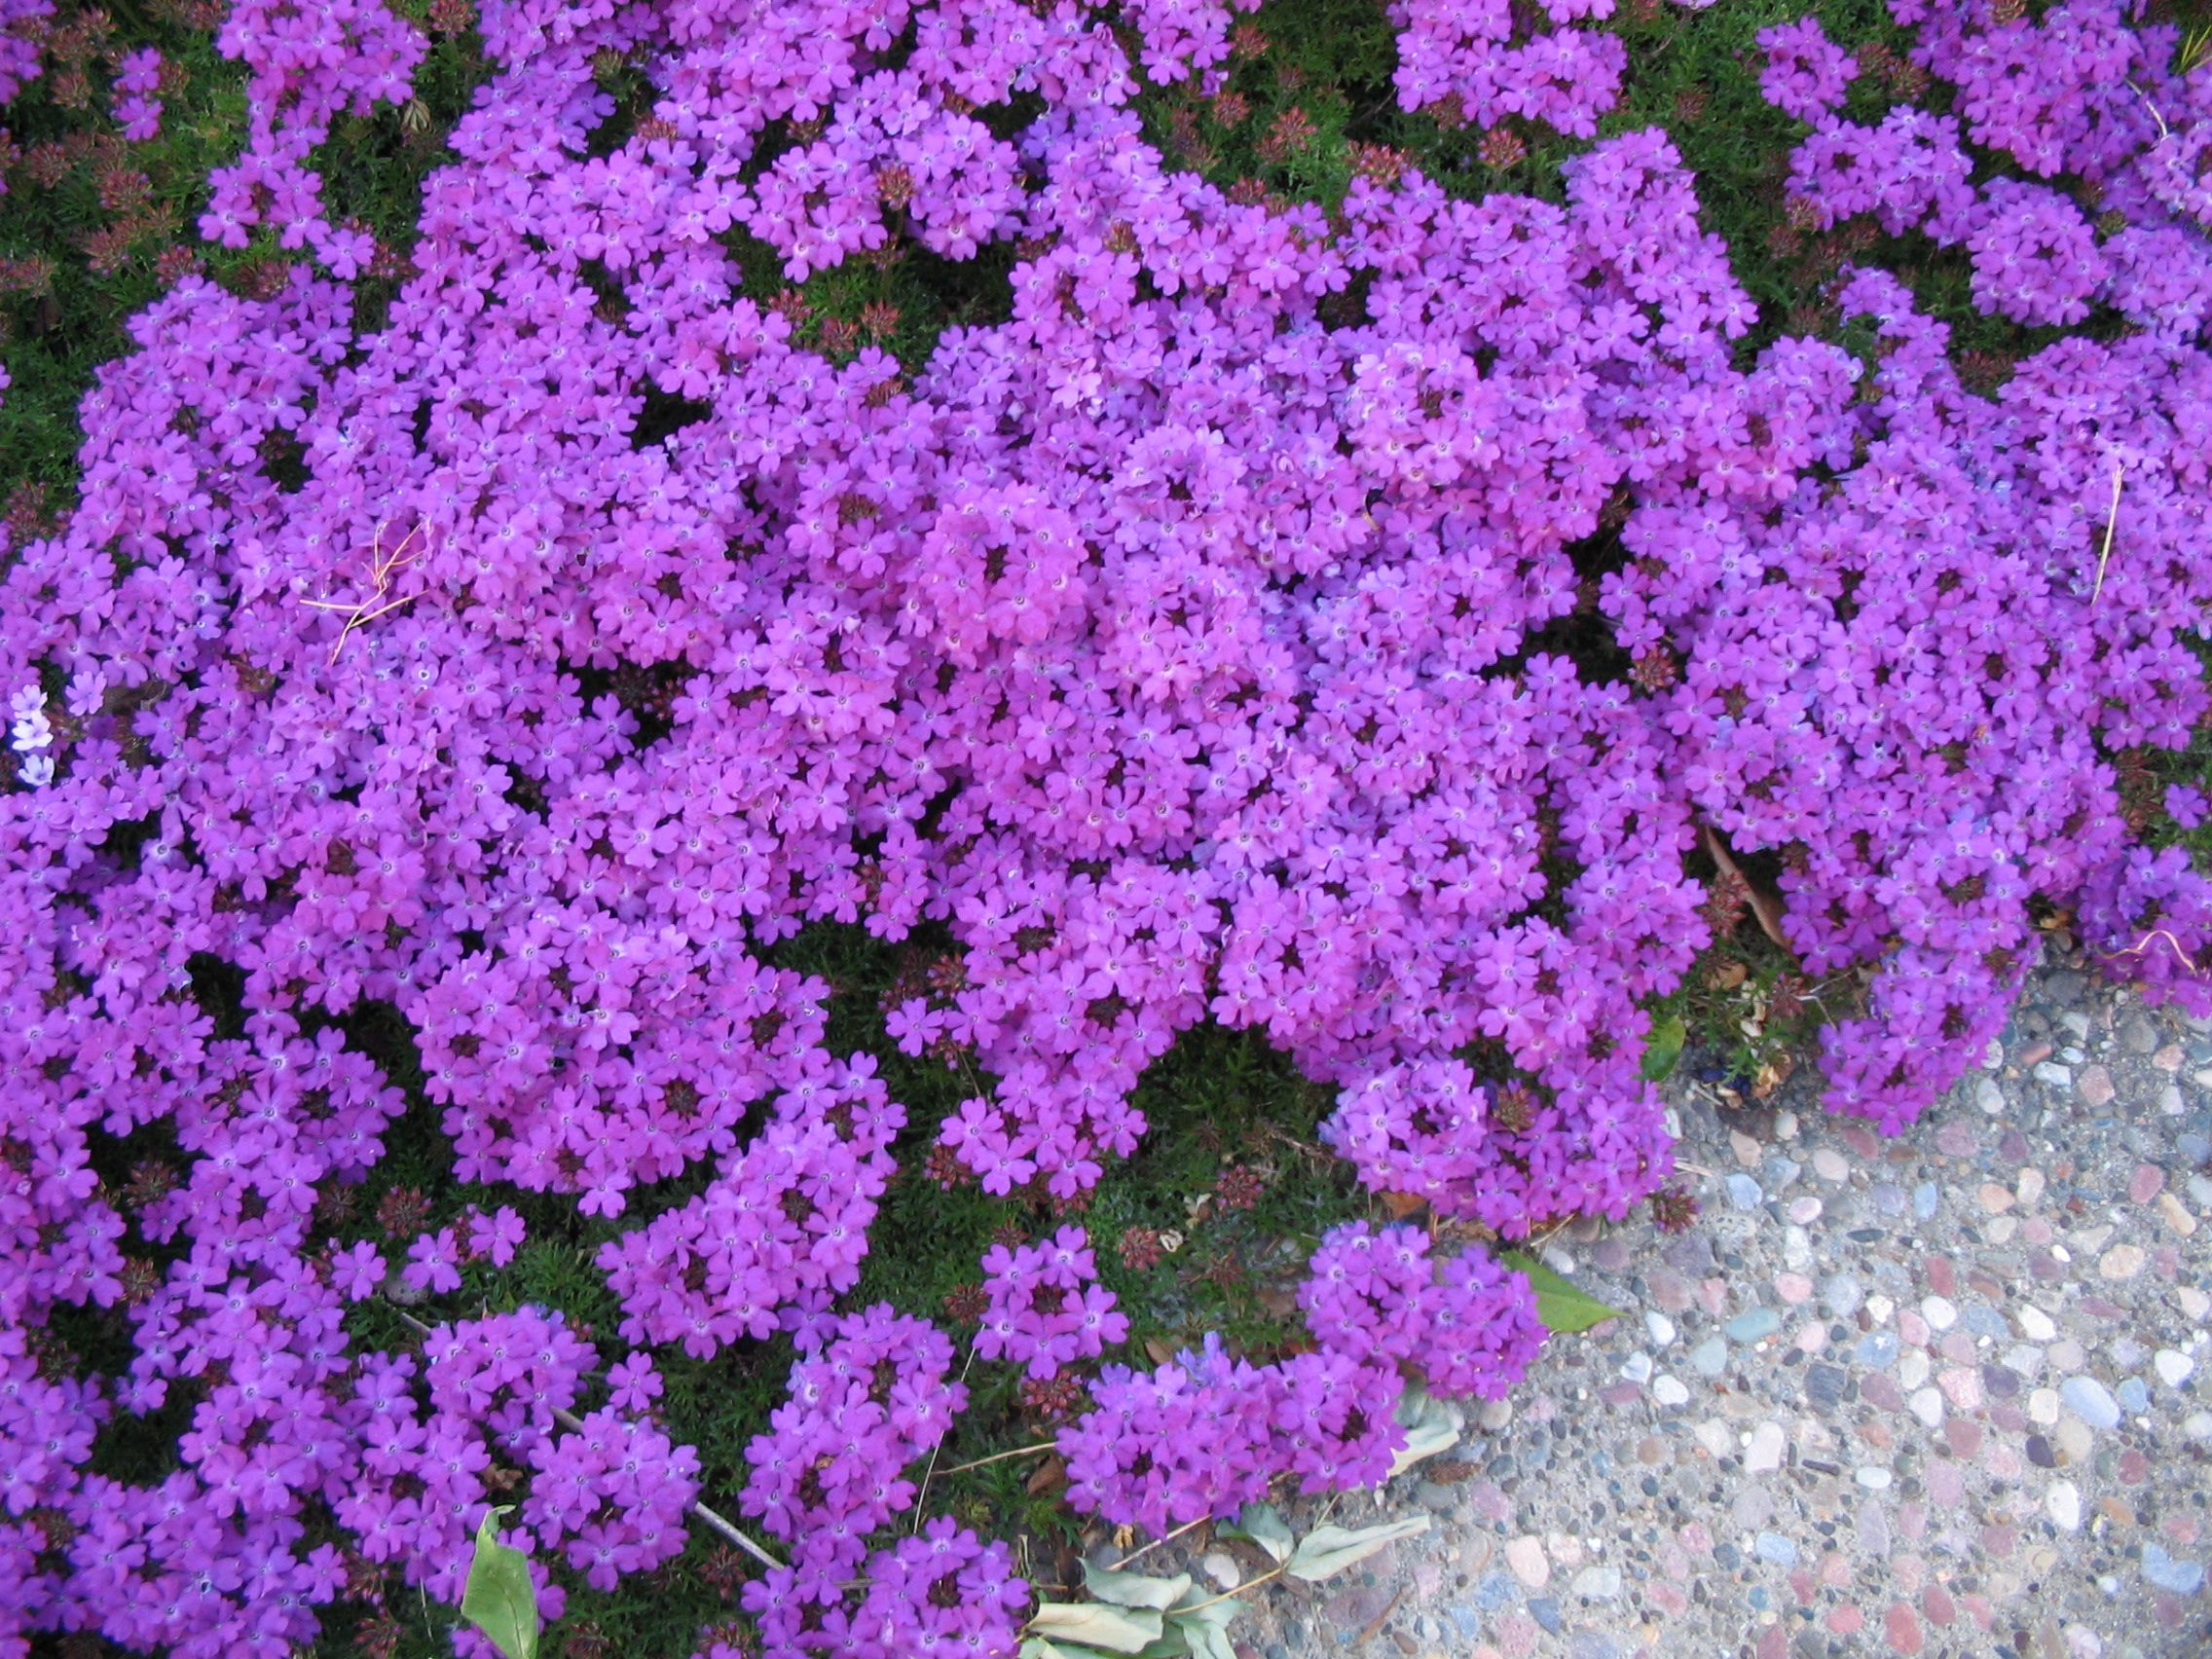 File:Verbena Purple 1.JPG